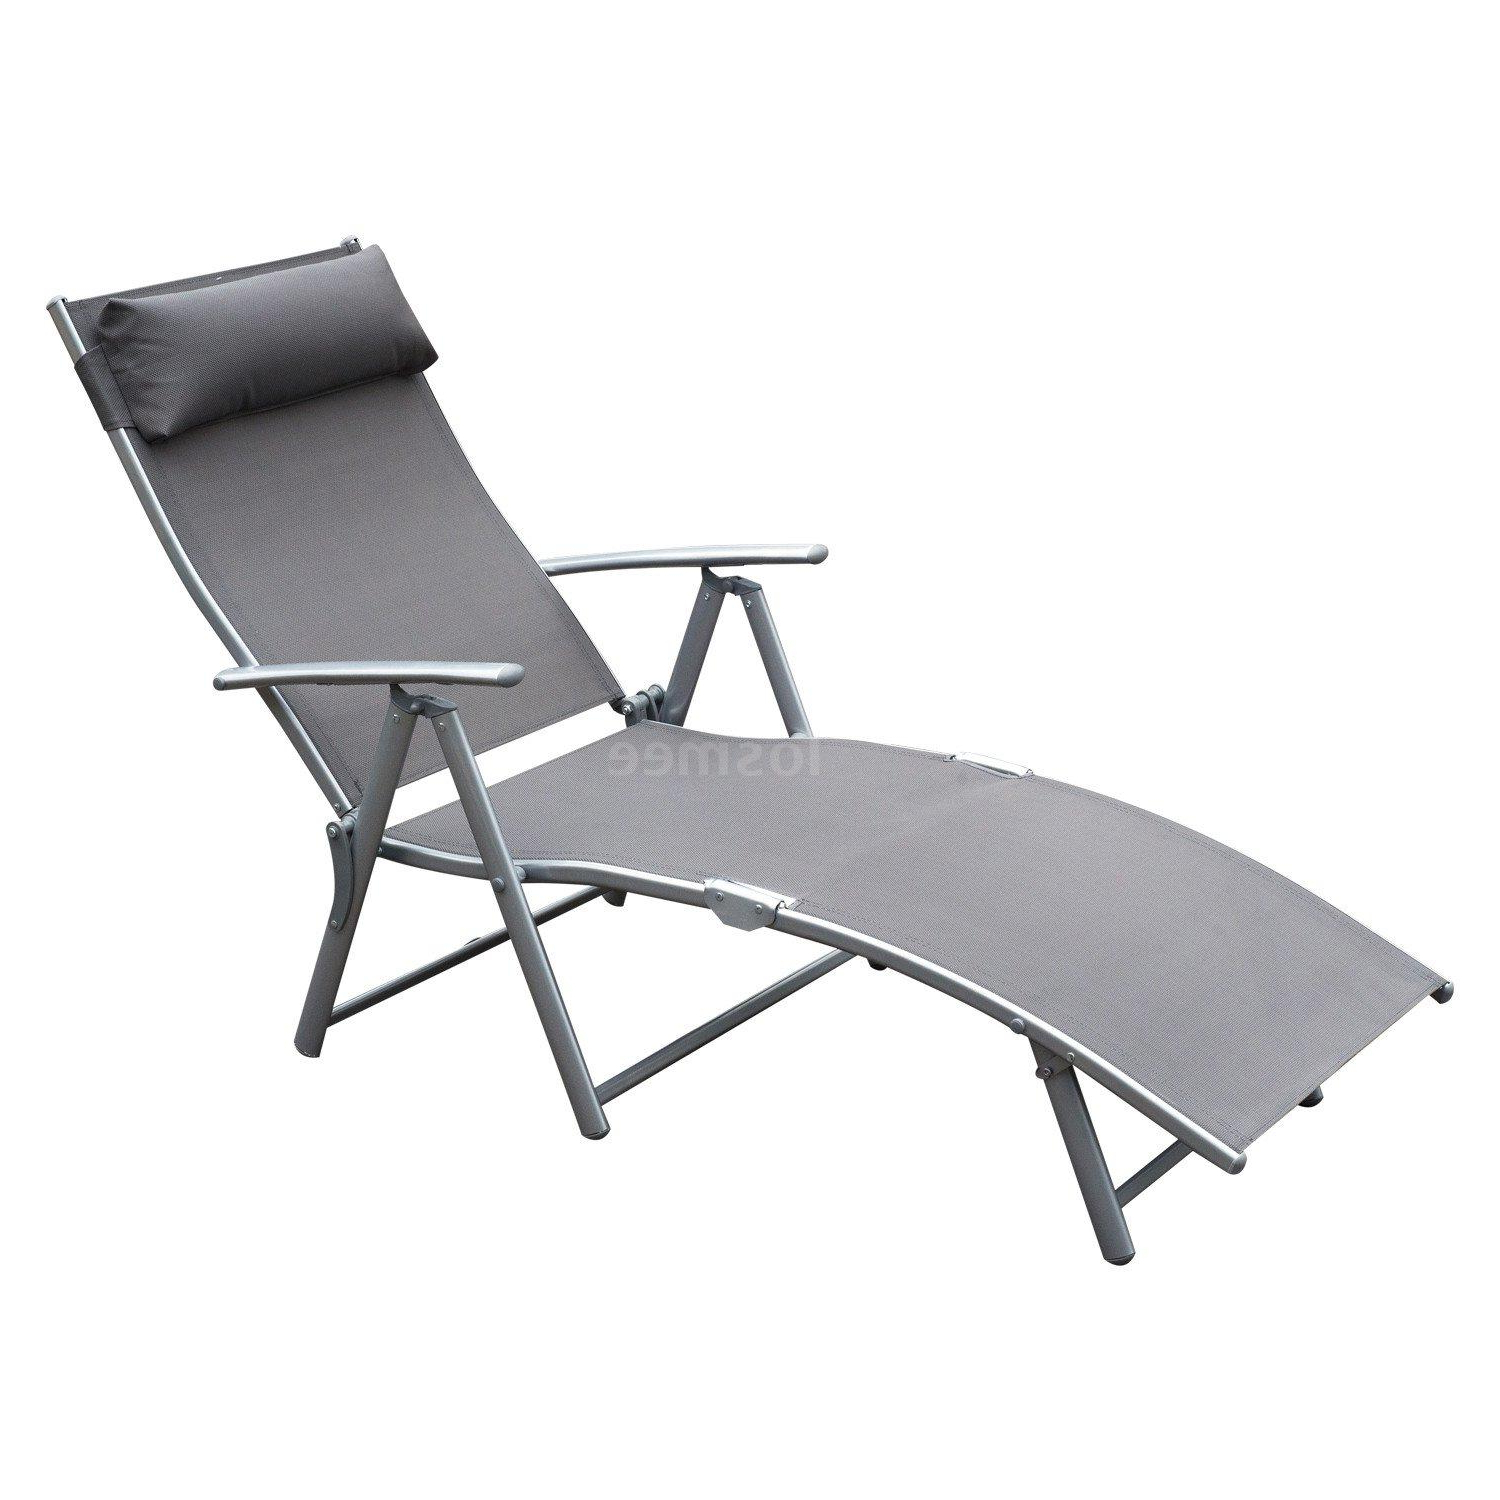 Details About Steel Sling Fabric Outdoor Folding Chaise Lounge Chair  Recliner – Grey Y4L1 Throughout Famous Black Sling Fabric Adjustable Chaise Lounges (View 14 of 25)